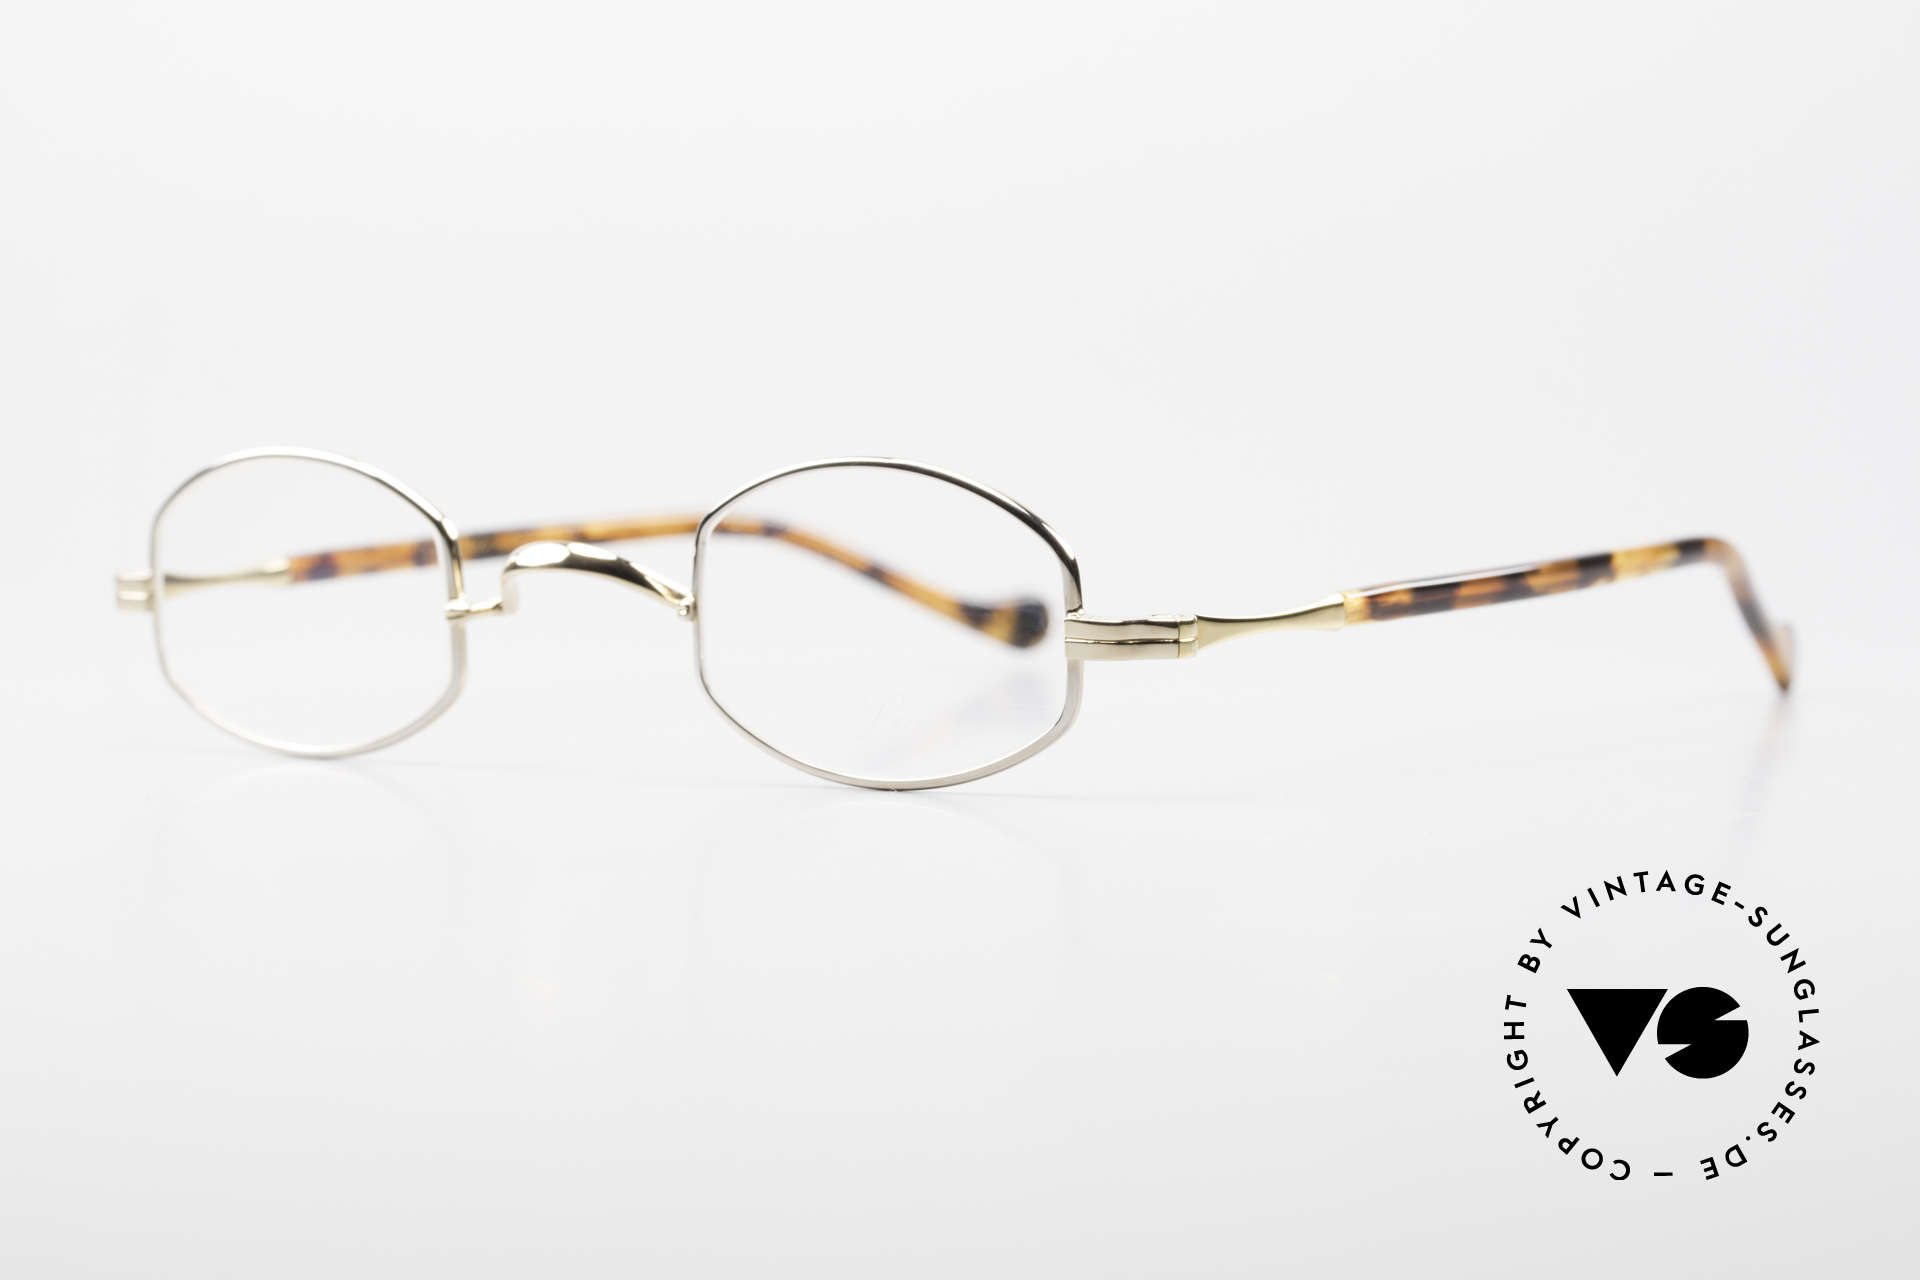 Lunor II A 02 Limited Edition BC Tortoise, rare model II A 02 = size 38°25, temple length: 140mm, Made for Men and Women